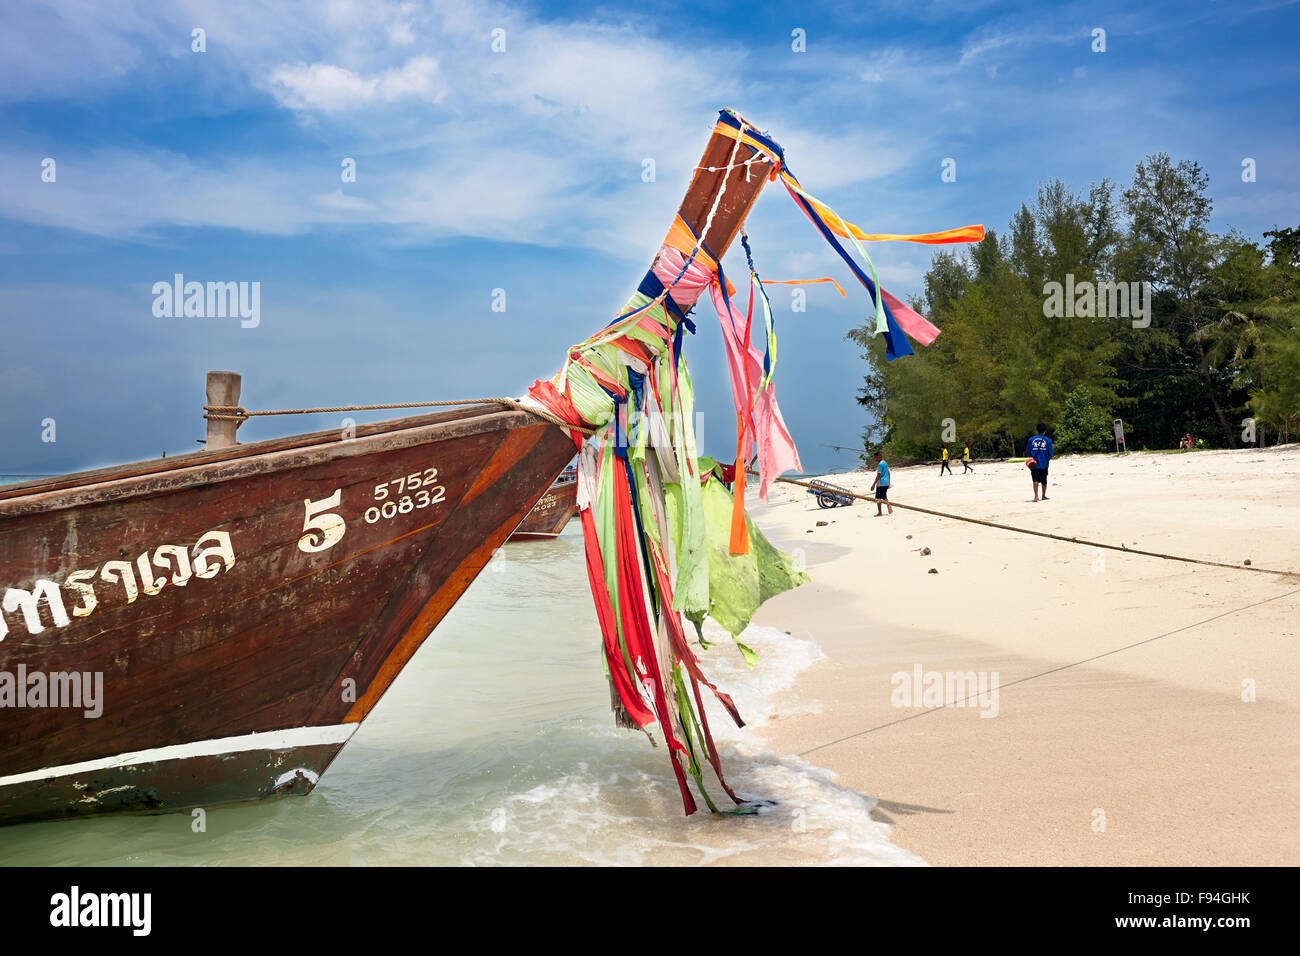 Longtail boats at the beach on Poda Island (Koh Poda). Krabi Province, Thailand. - Stock Image